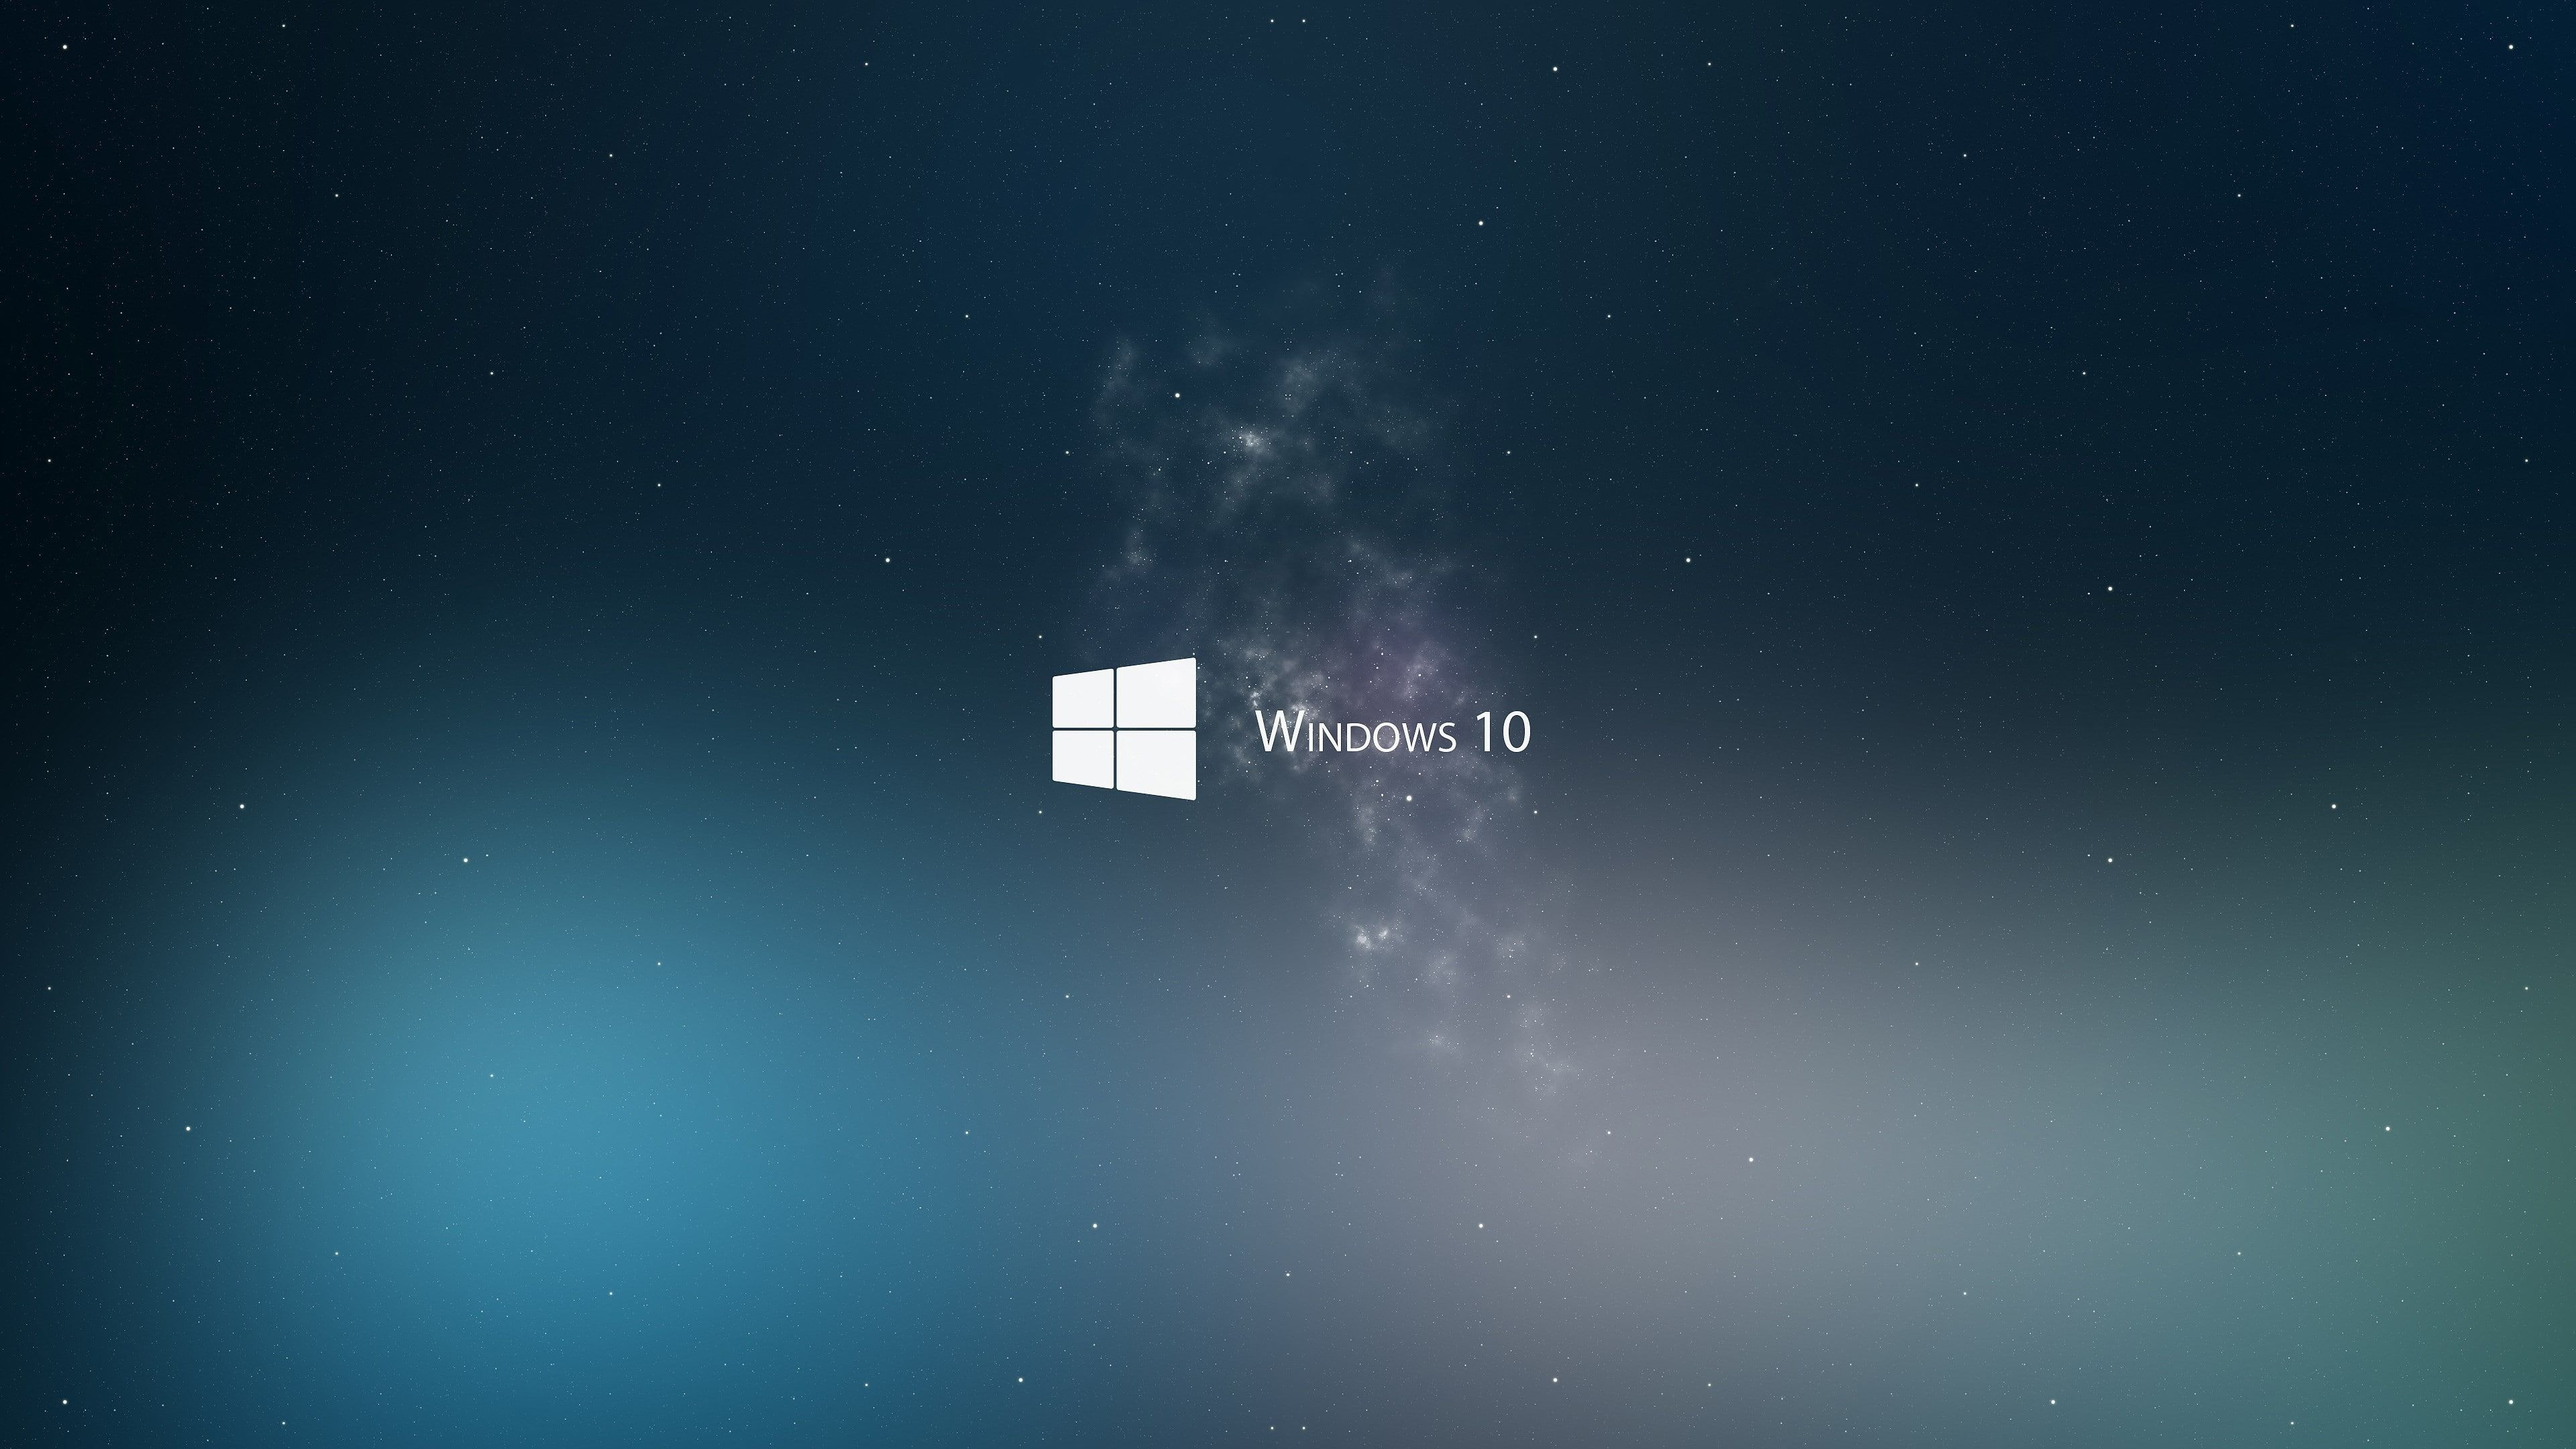 Windows 10 Graphic Design 4k Wallpaper Hdwallpaper Desktop In 2020 Wallpaper Windows 10 Windows 10 4k Wallpapers For Pc